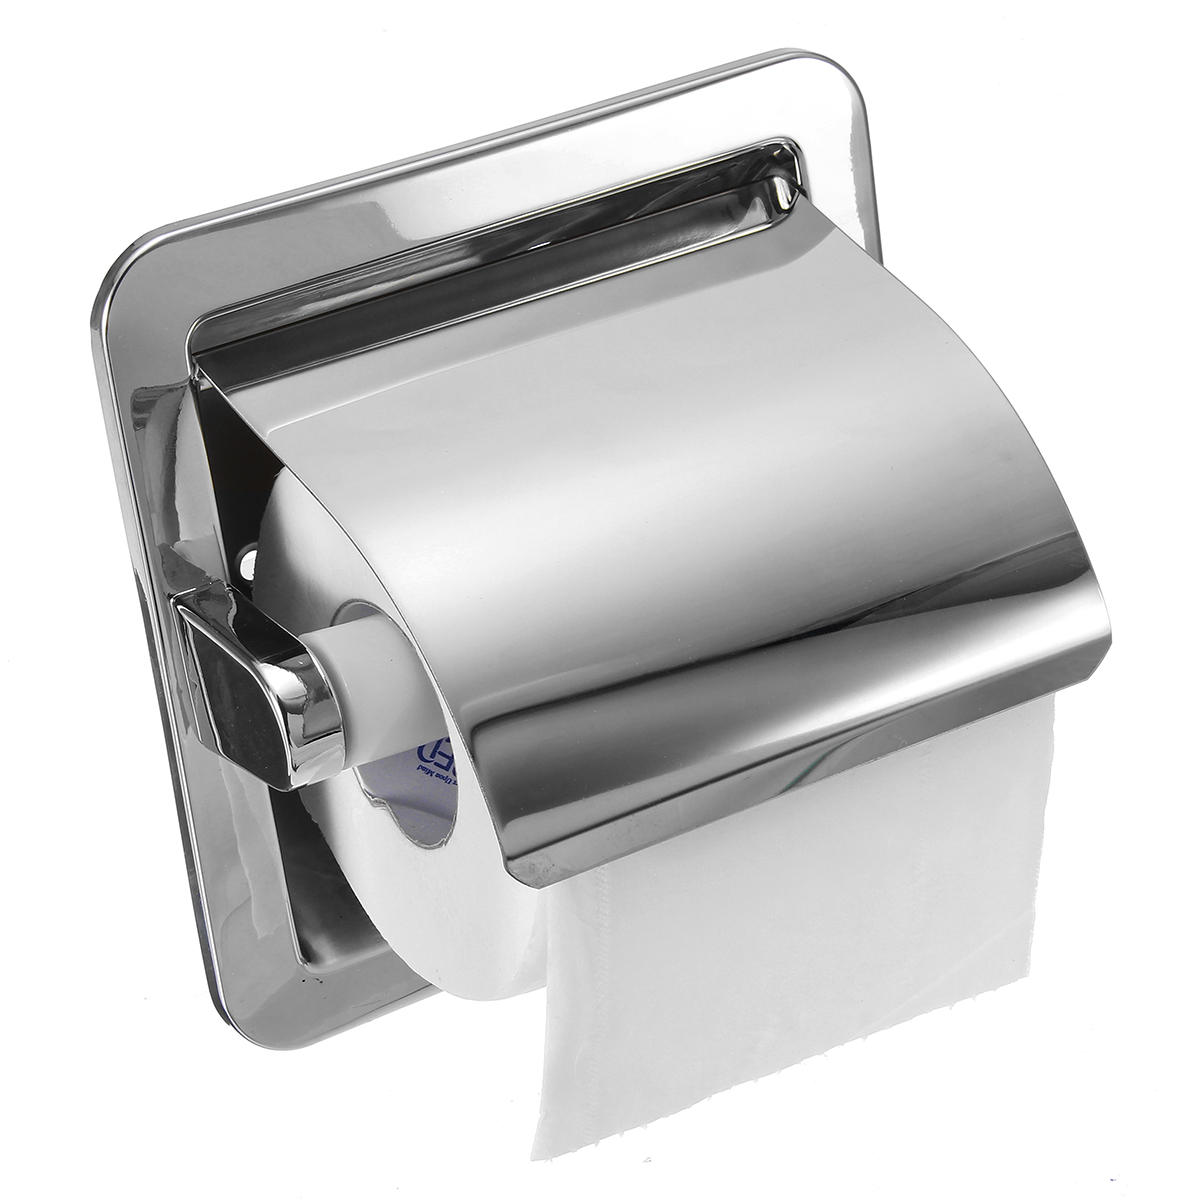 Recessed Toilet Paper Holder For Large Rolls Recessed Toilet Paper Roll Holder Tissue Brushed Nickel